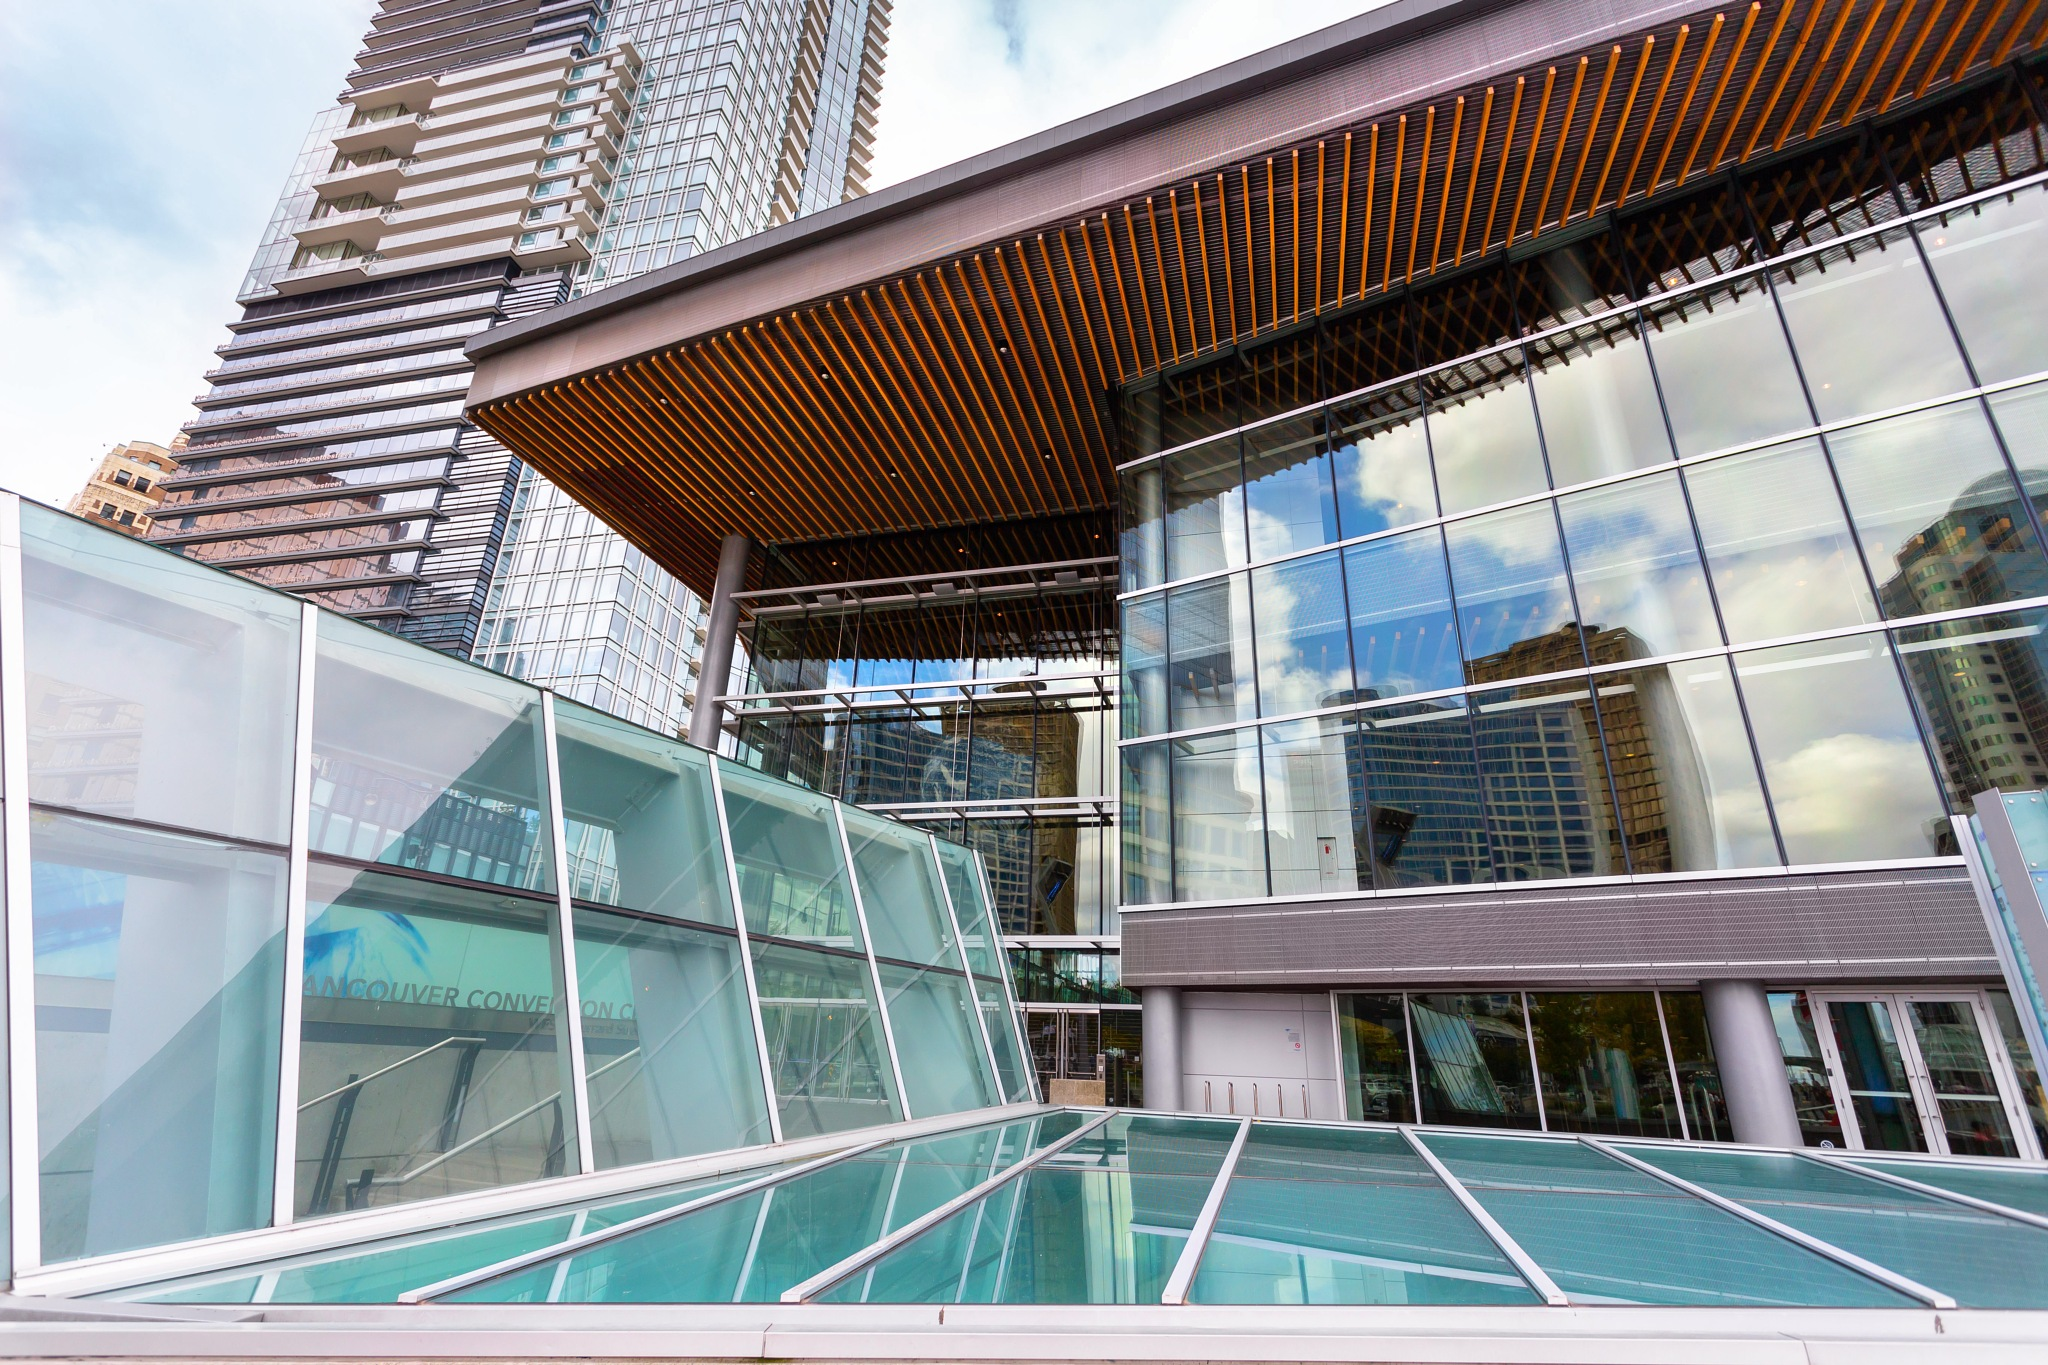 Vancouver Convention Center by Duy Nguyen